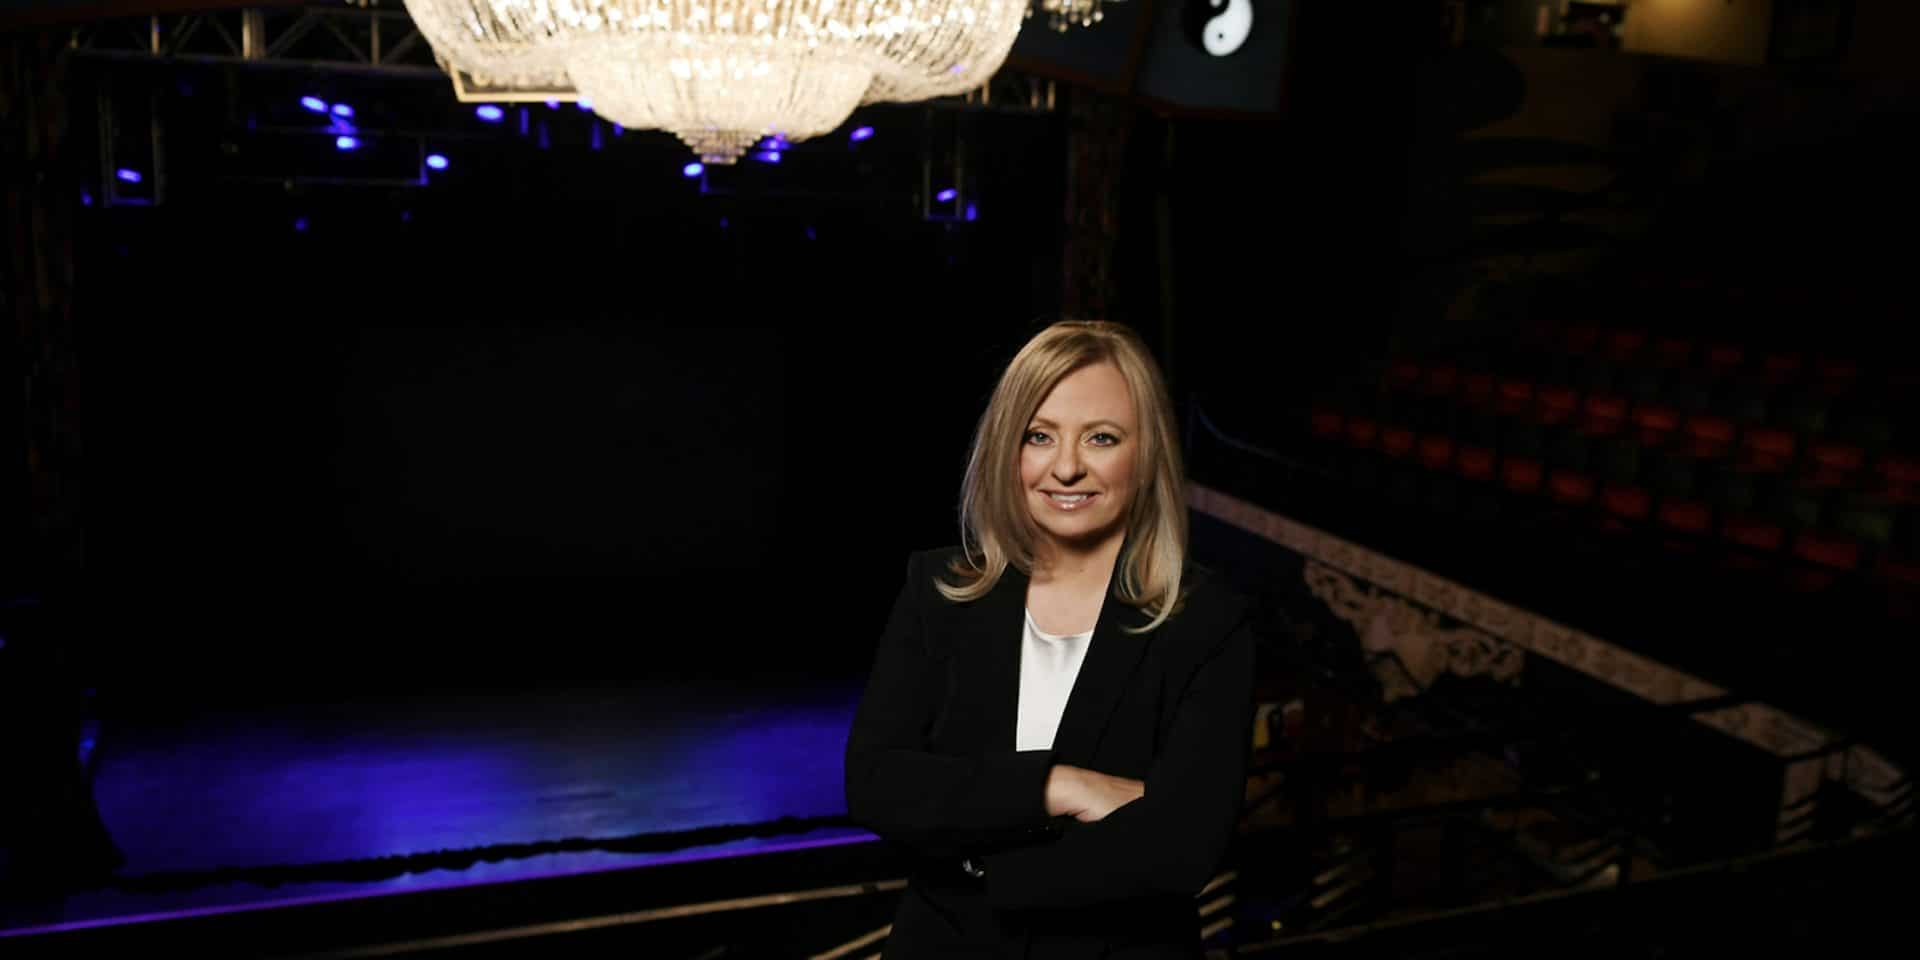 Caesars Veteran Sherri Sosa to Lead Live Nation's Newly Named 'Venue Nation' Business